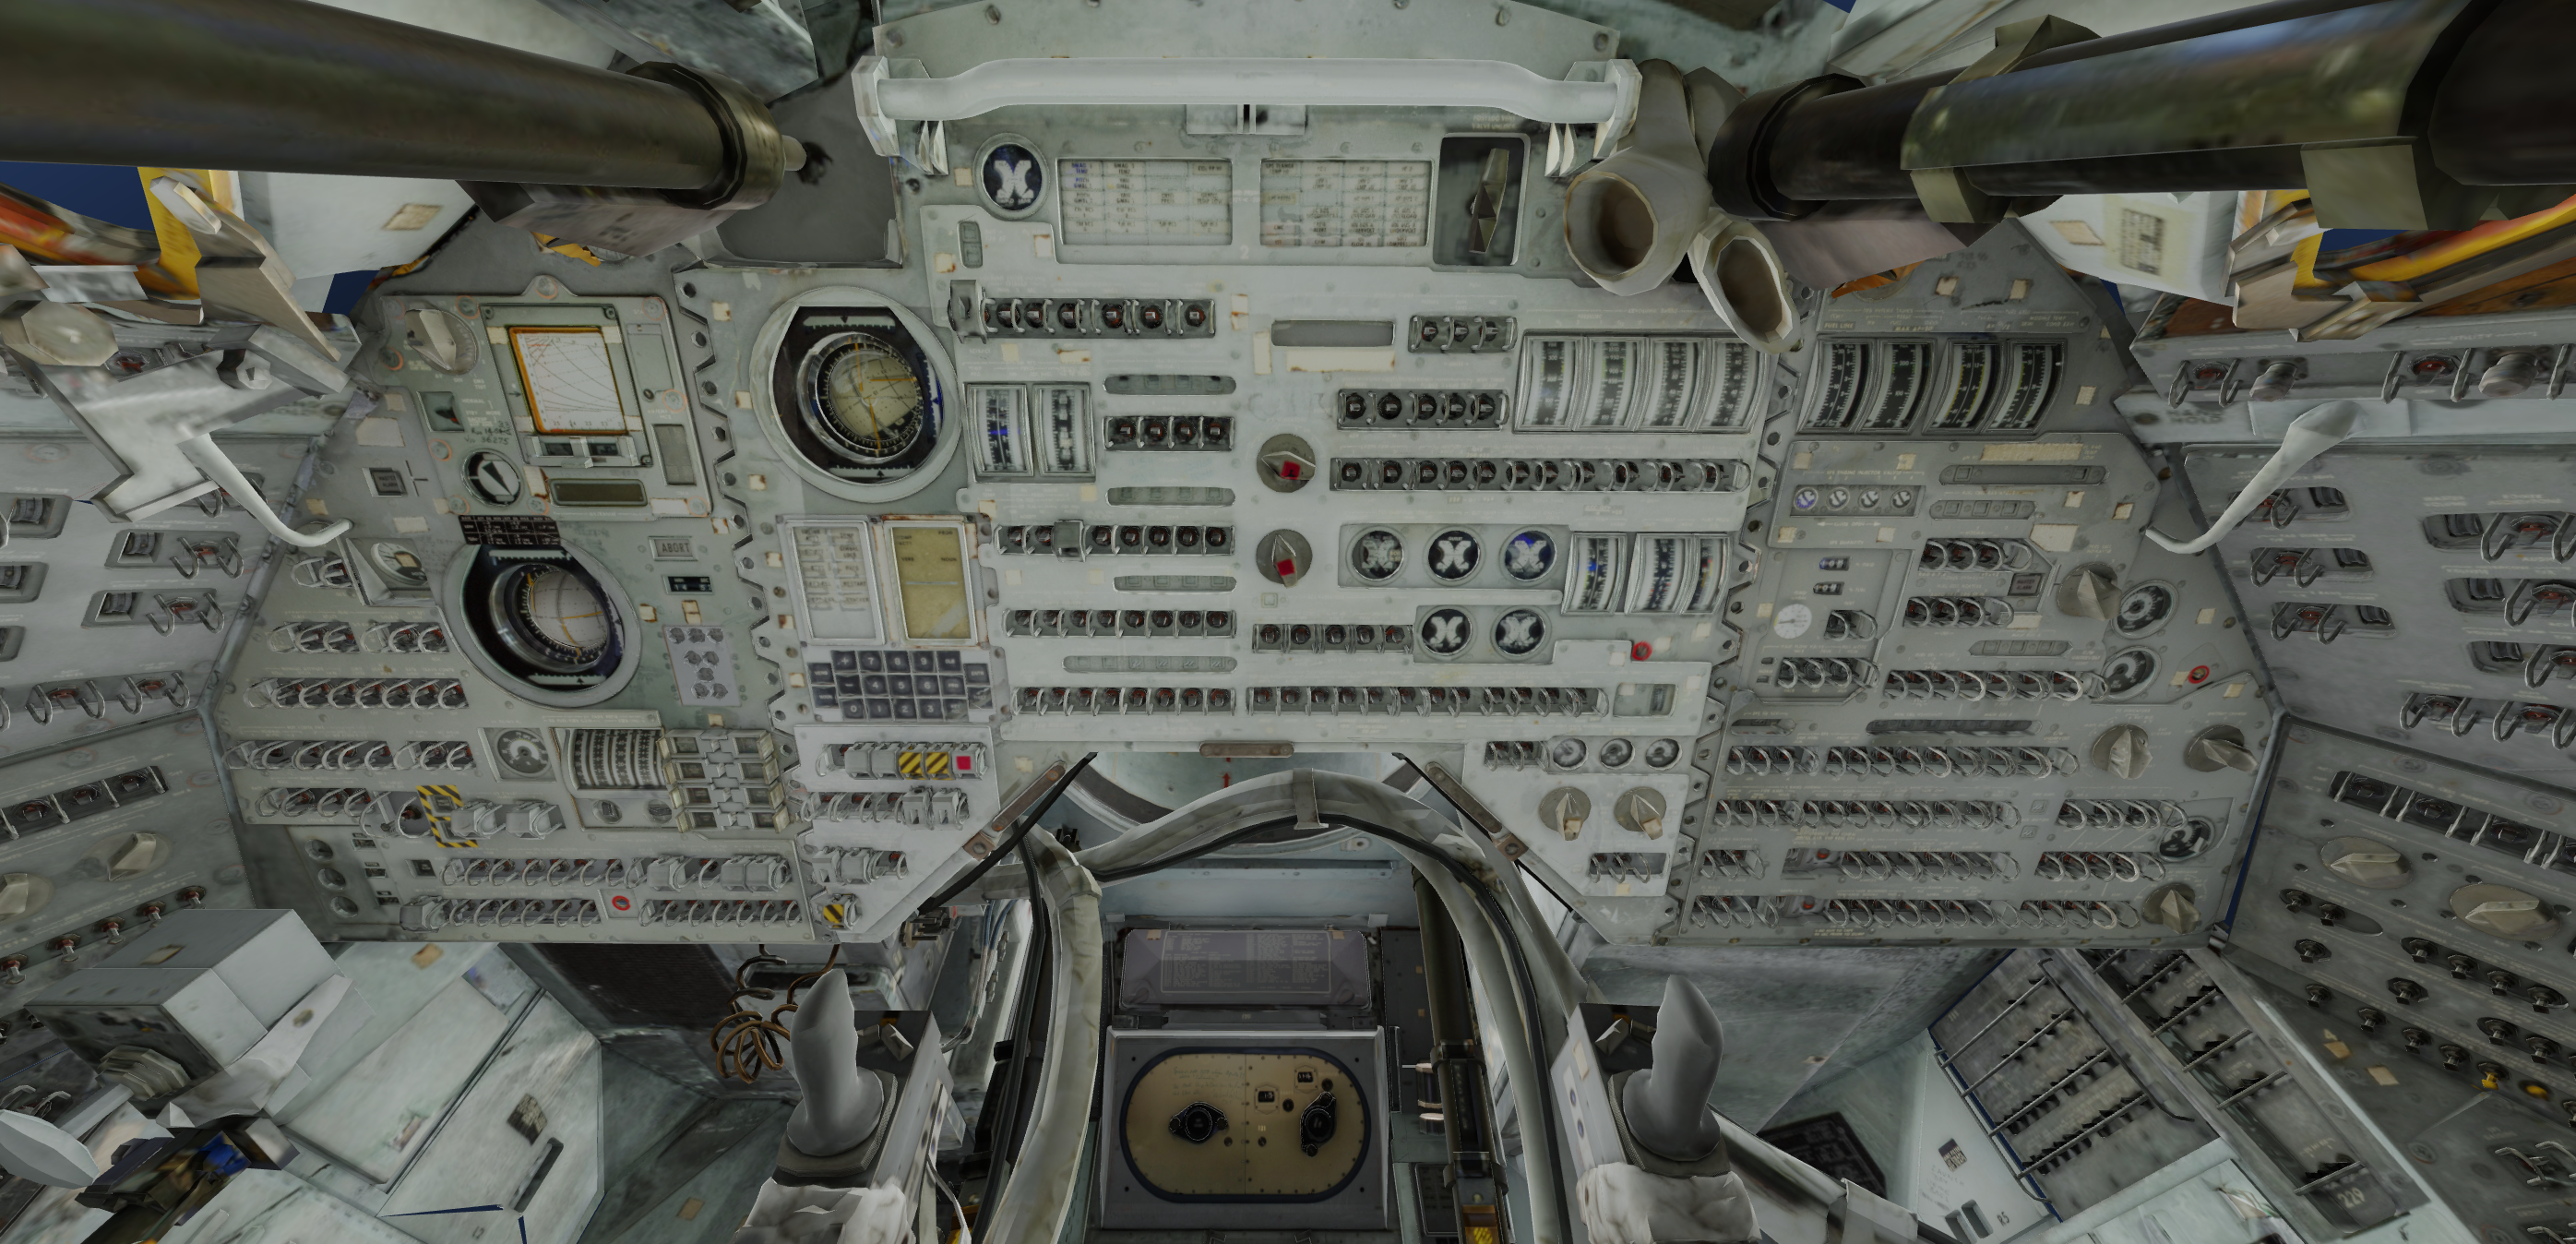 Displays and controls of the Apollo 11.